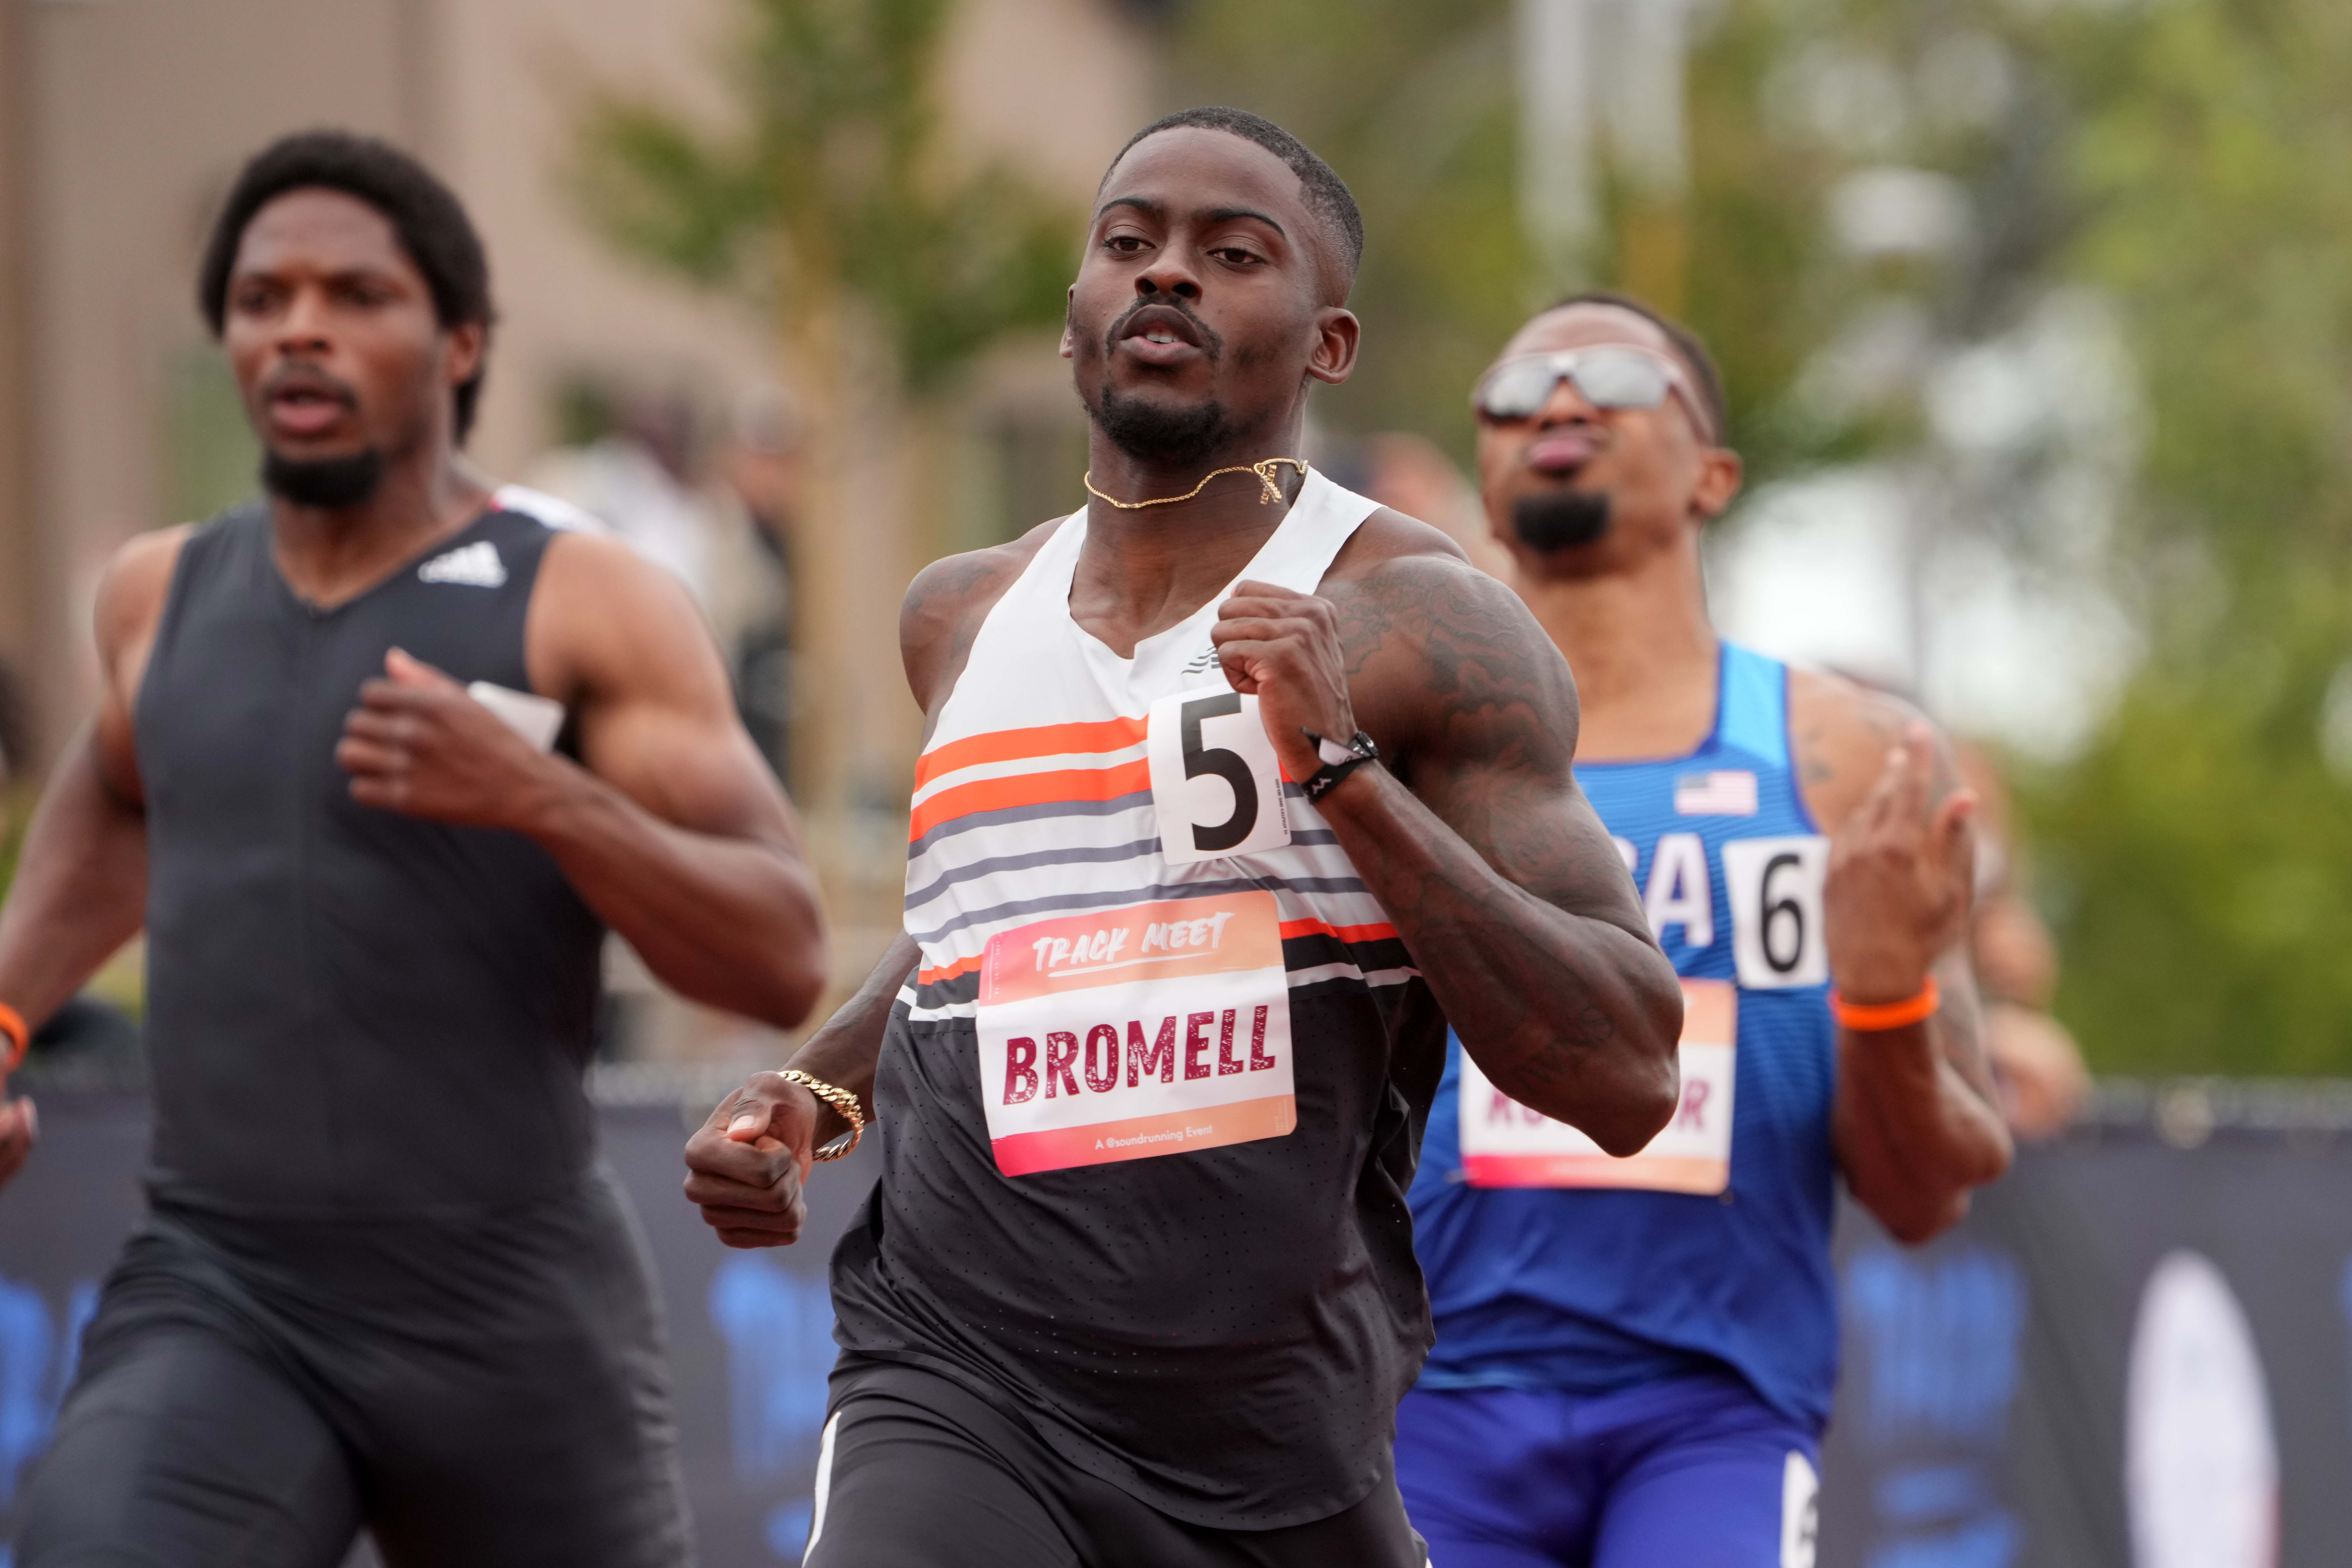 May 15, 2021; Irvine, California, USA; Trayvon Bromell (USA) wins the 100m in 9.92 during the Track Meet in a World Athletics Continental Tour competition at Crean Lutheran High School. Mandatory Credit: Kirby Lee-USA TODAY Sports